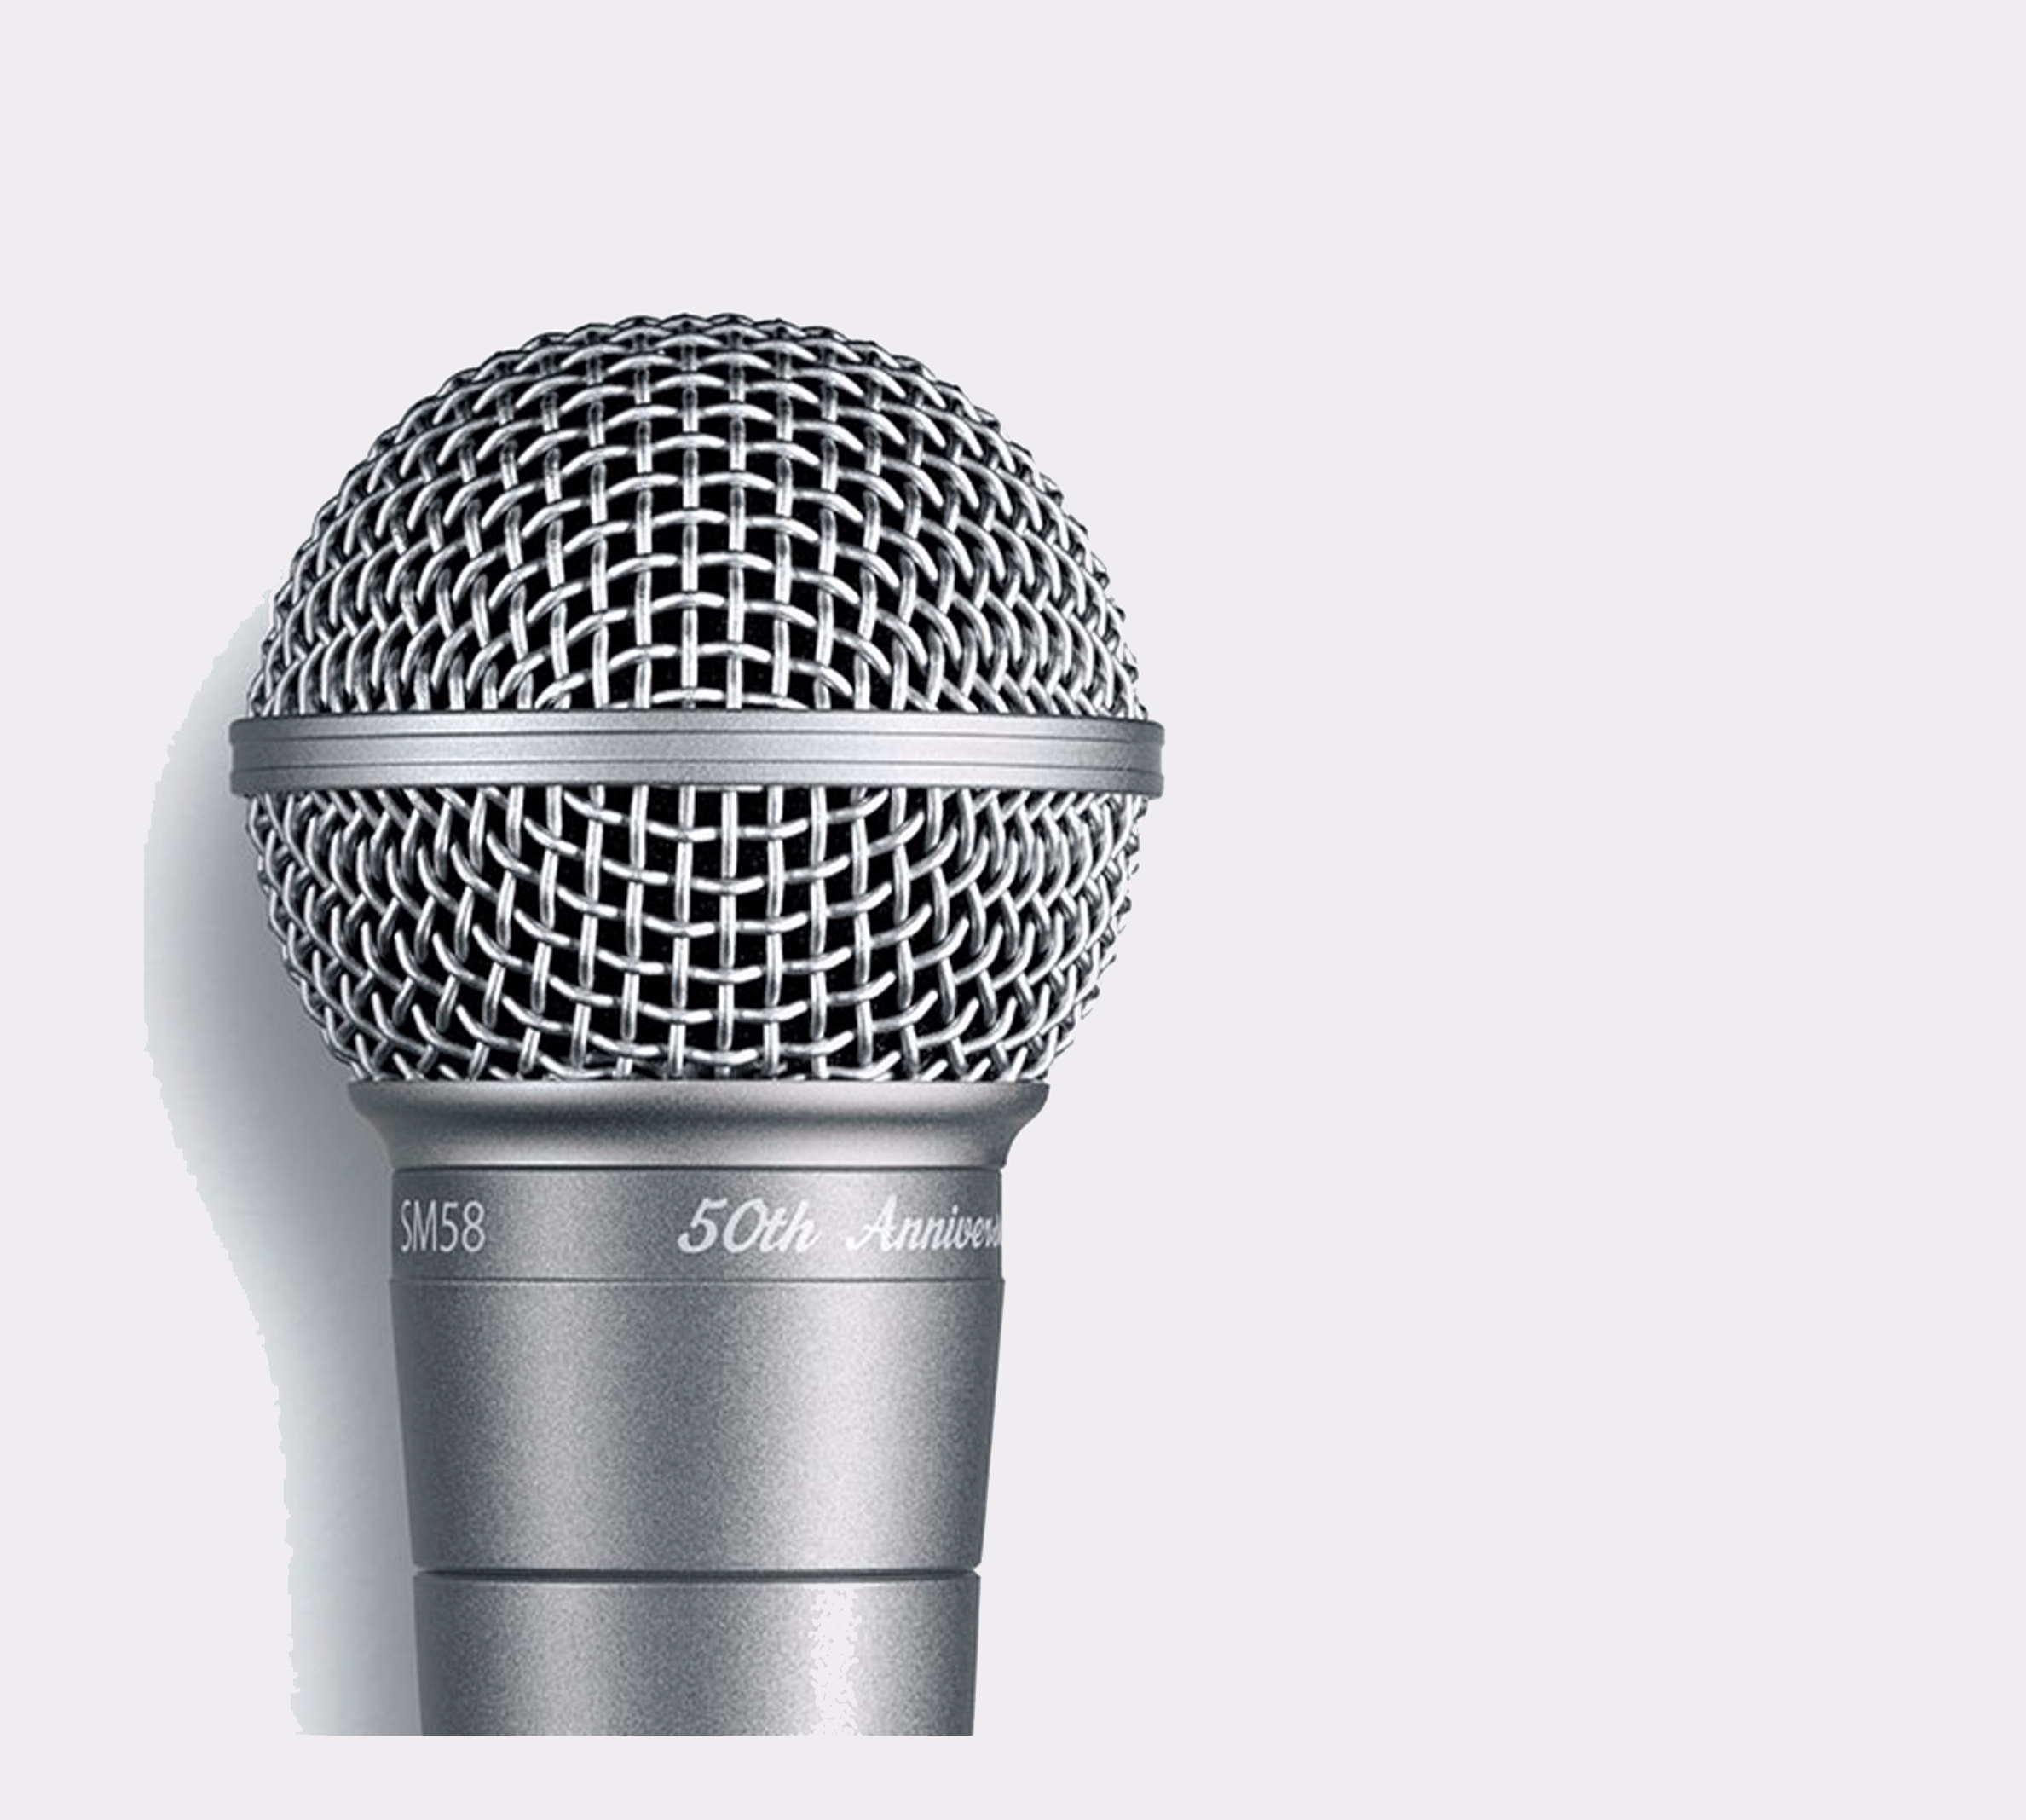 Shure SM58-50A Anniversary Edition Close Up